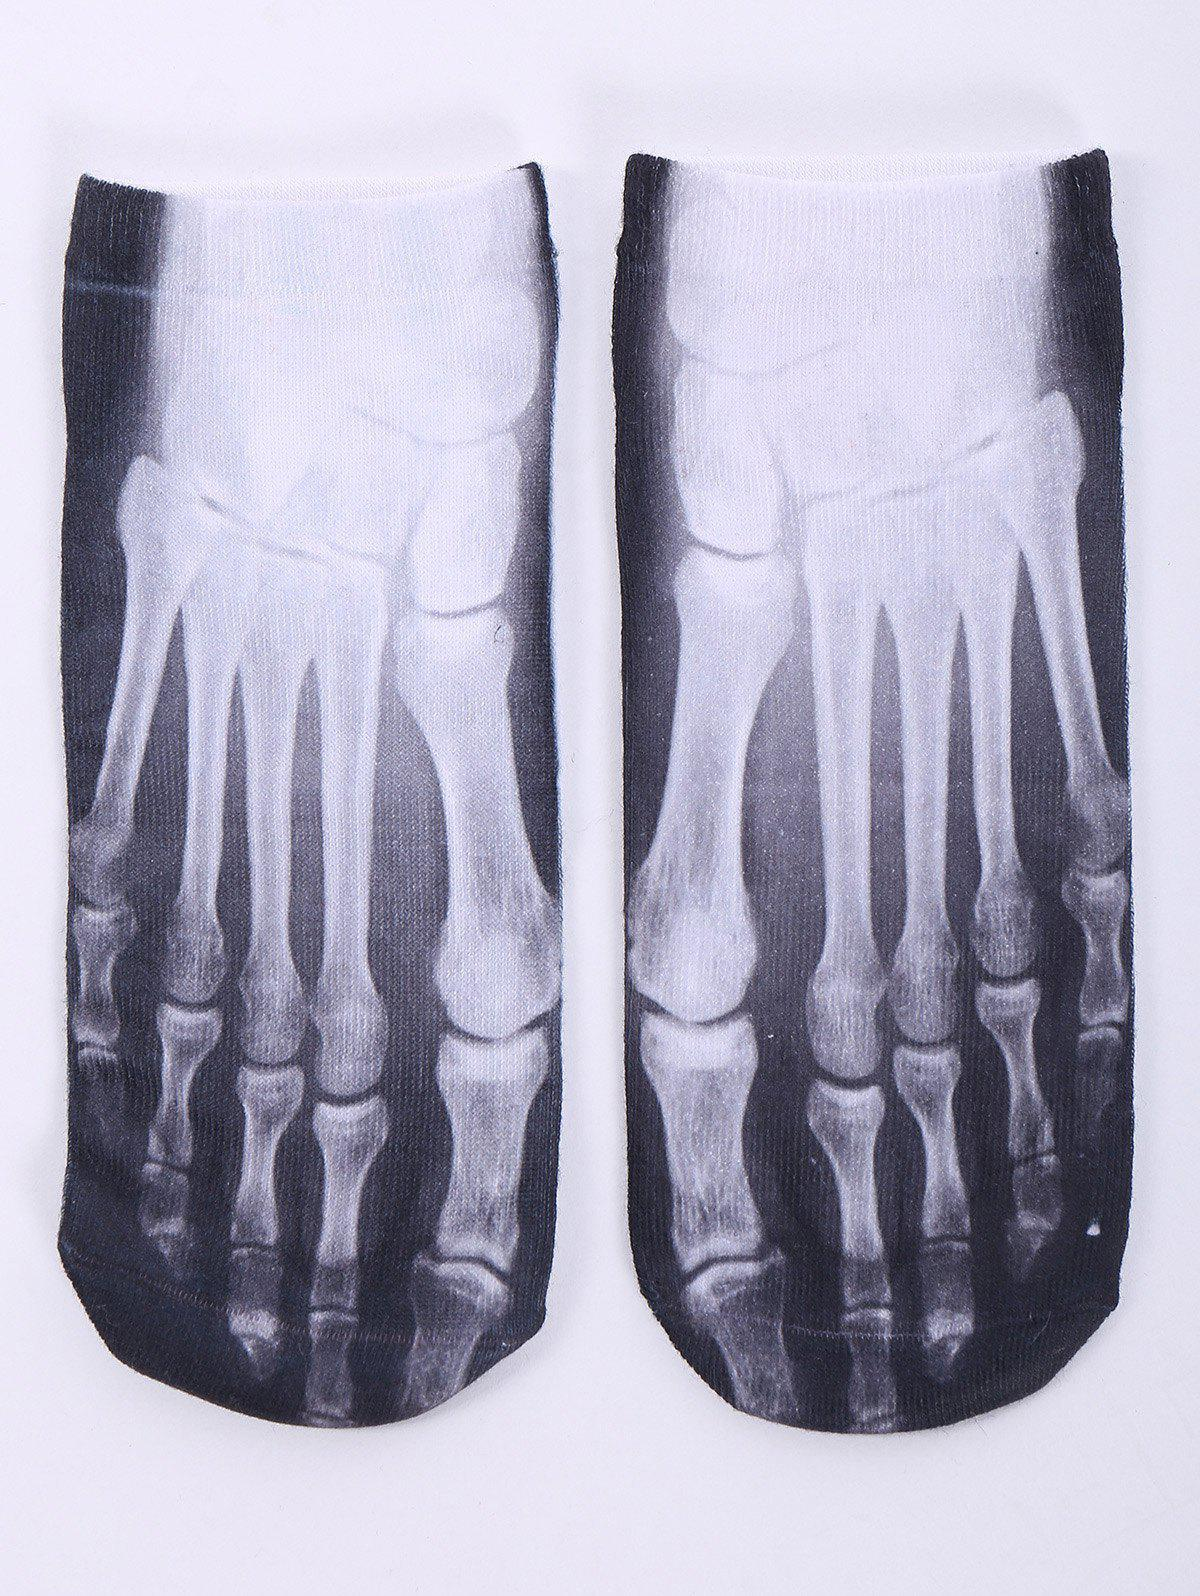 One Side 3D Foot Skeleton Printed Crazy Ankle SocksACCESSORIES<br><br>Color: WHITE; Type: Socks; Group: Adult; Gender: For Women; Style: Fashion; Pattern Type: Others; Material: Spandex; Length(CM): 20CM; Width(CM): 8CM; Weight: 0.1000kg; Package Contents: 1 x Socks(Pair);